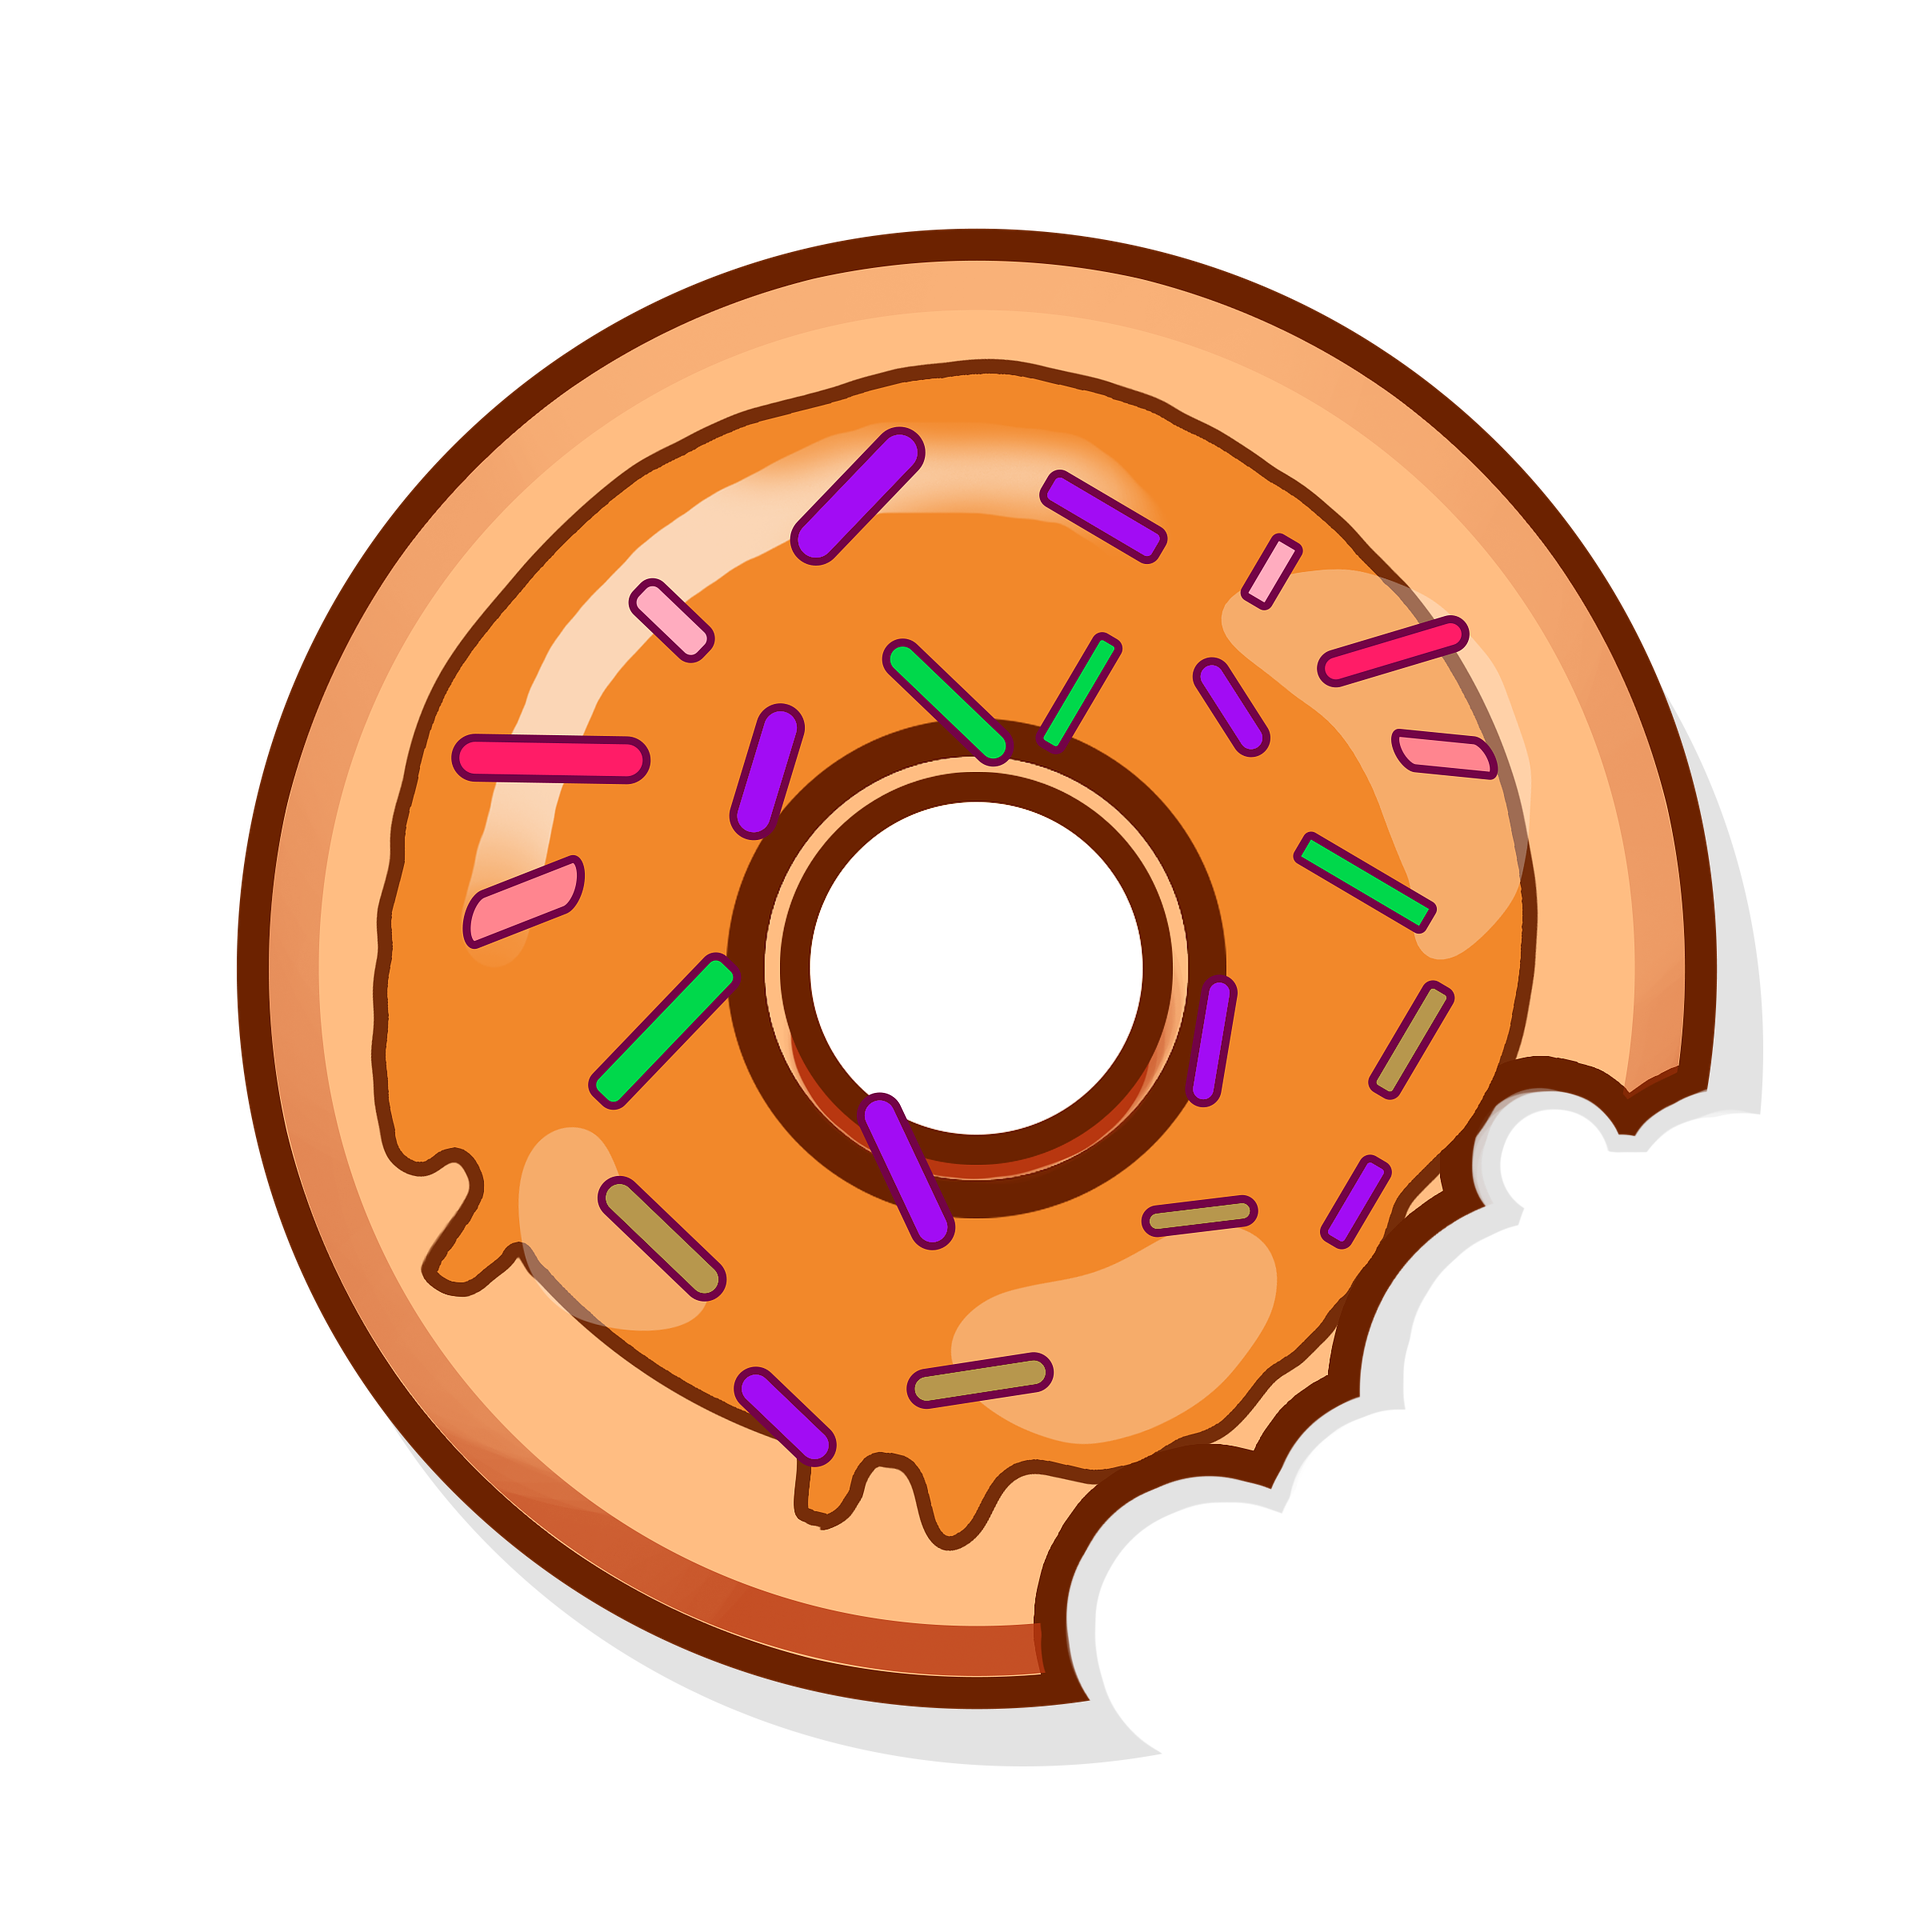 Donuts clipart green. Eat sugarboy donutpng